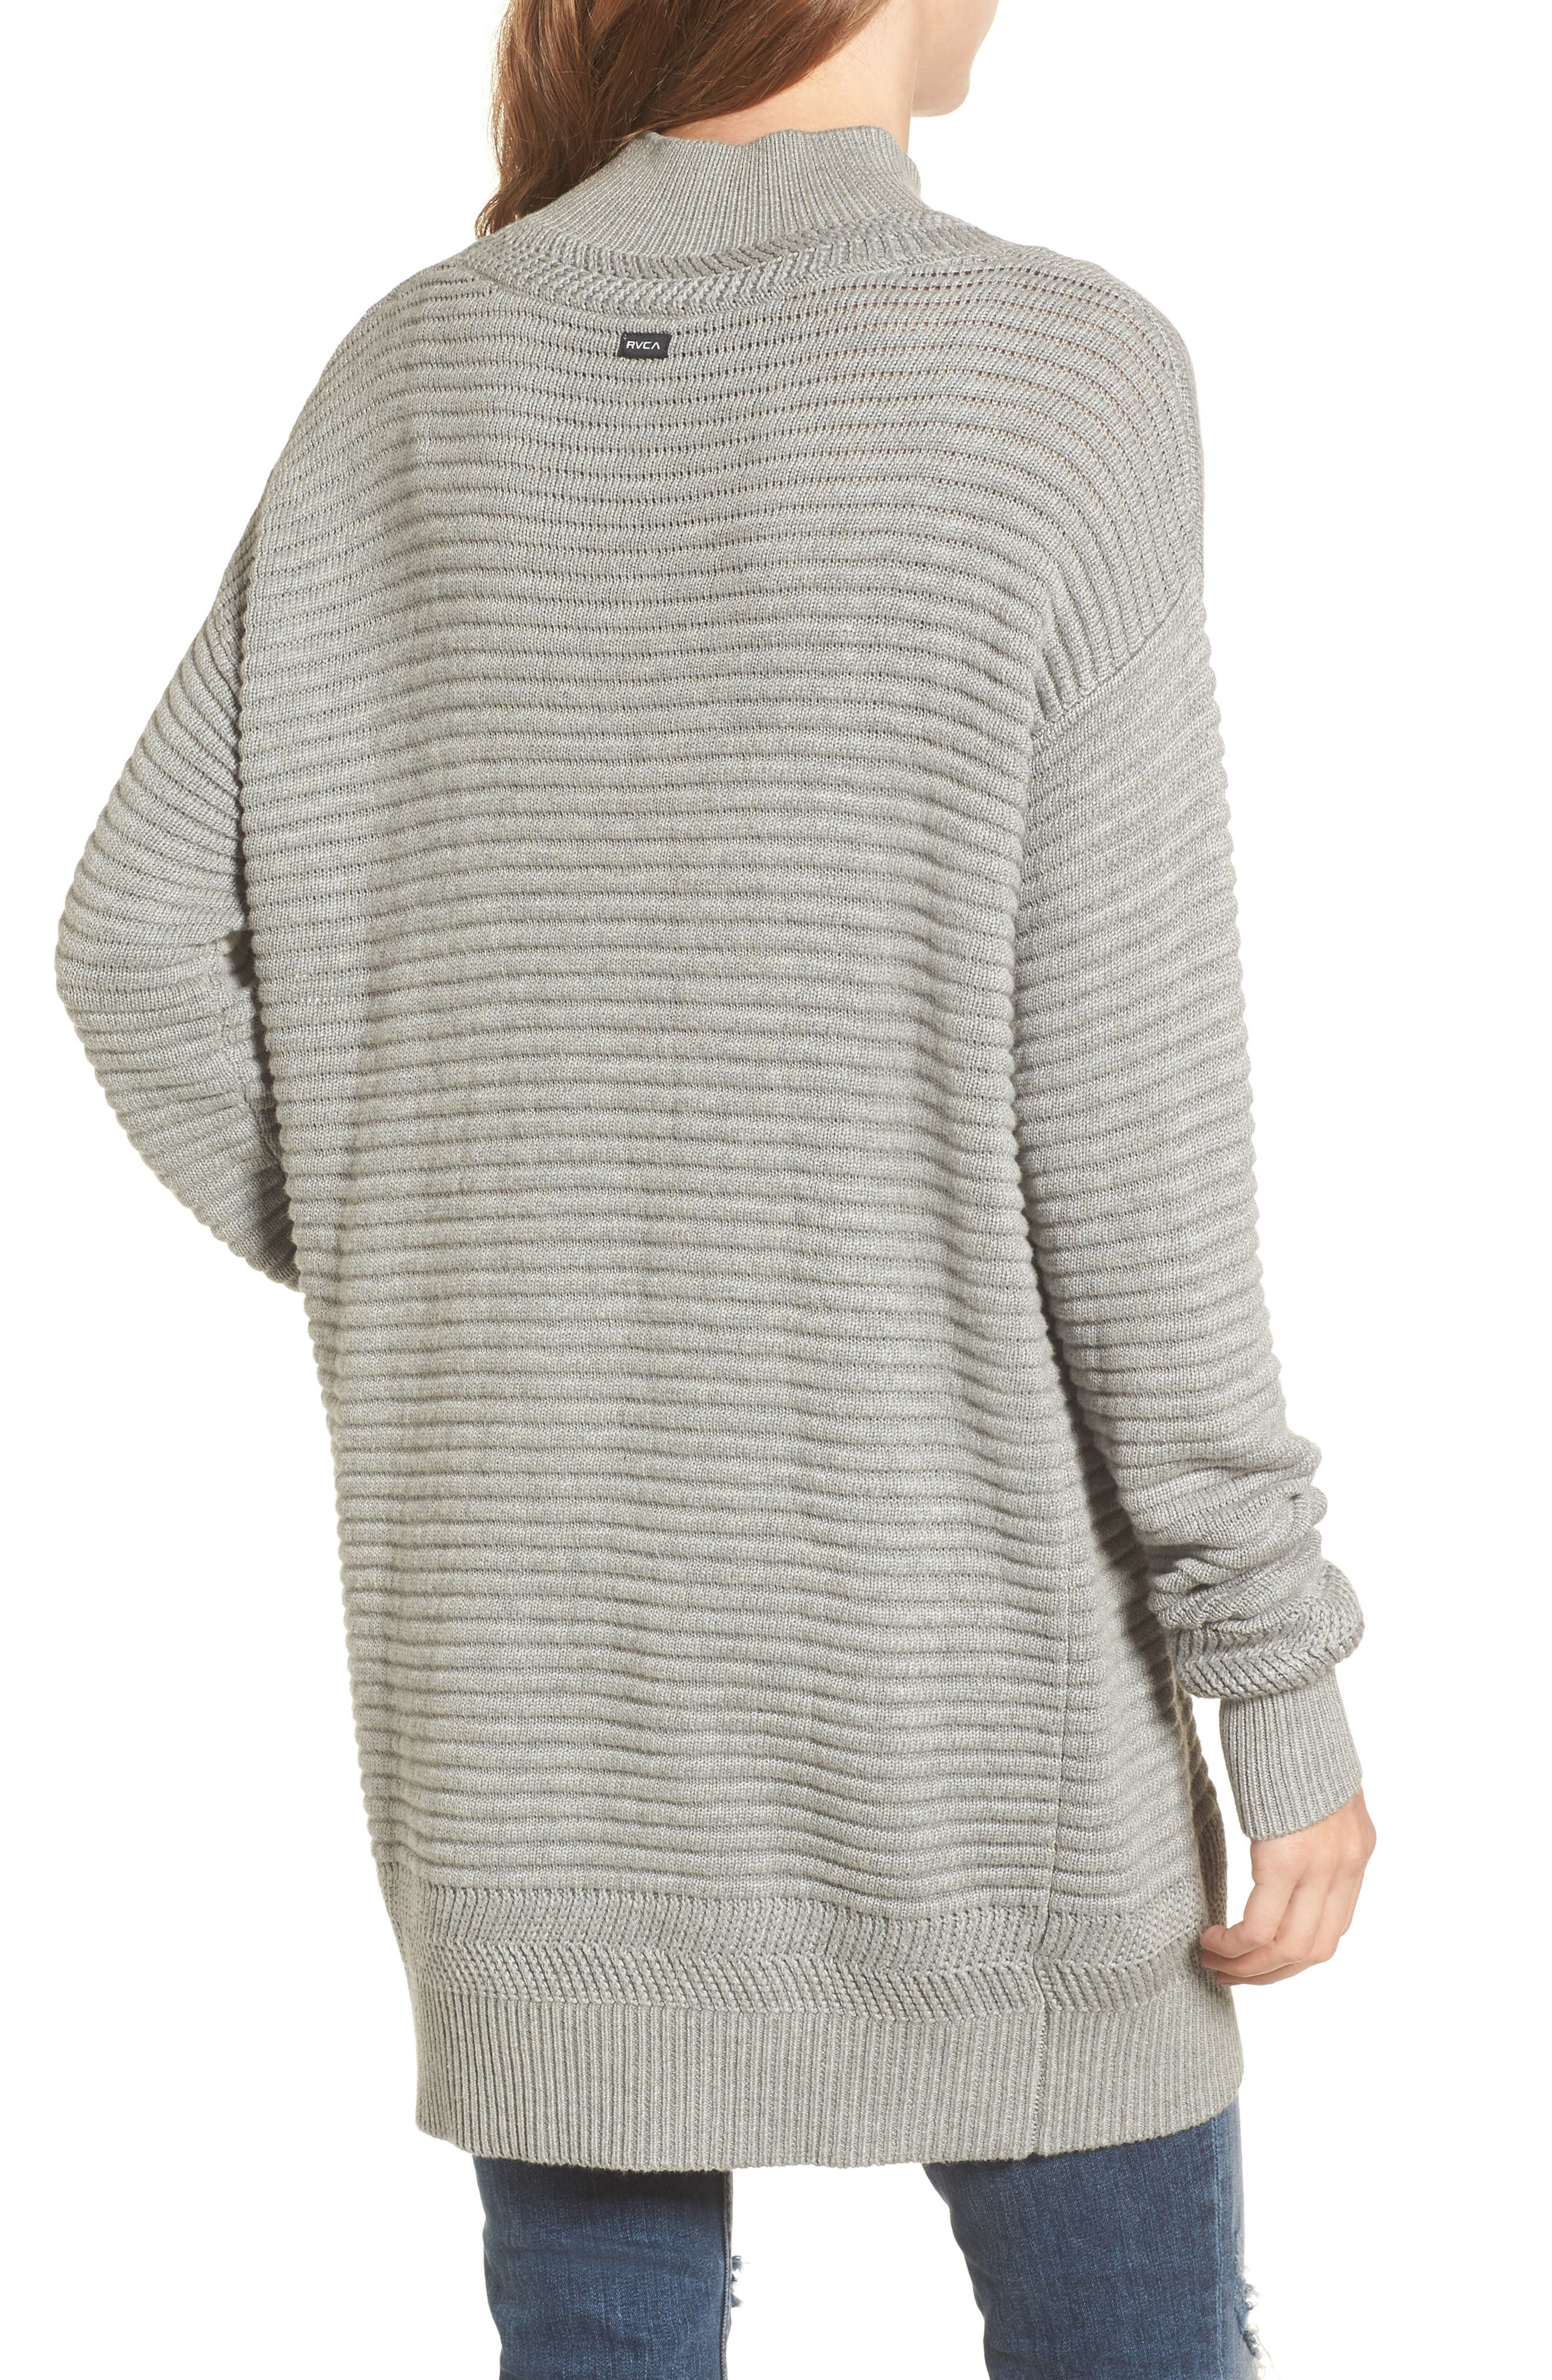 What Now Cotton Sweater,                             Alternate thumbnail 2, color,                             020